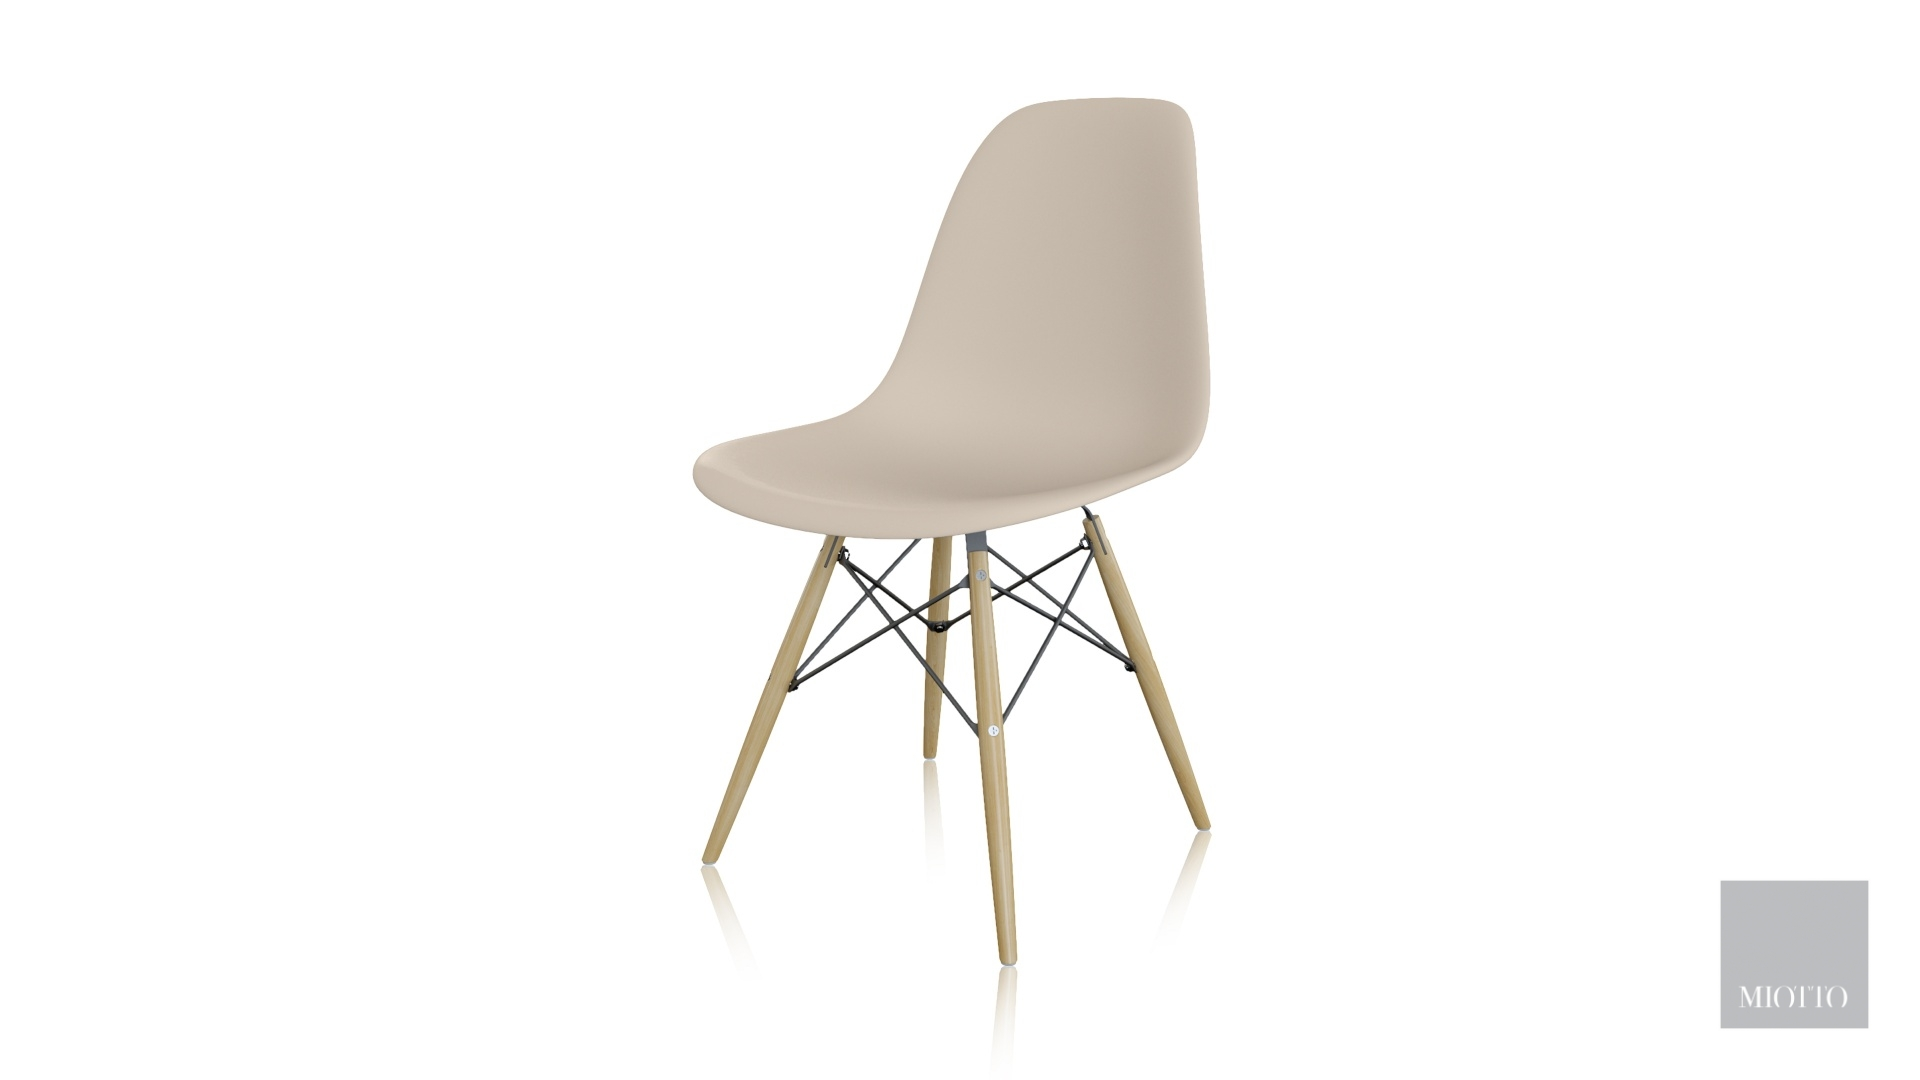 miotto_larici wood DC taupe front T miotto dining chair furniture